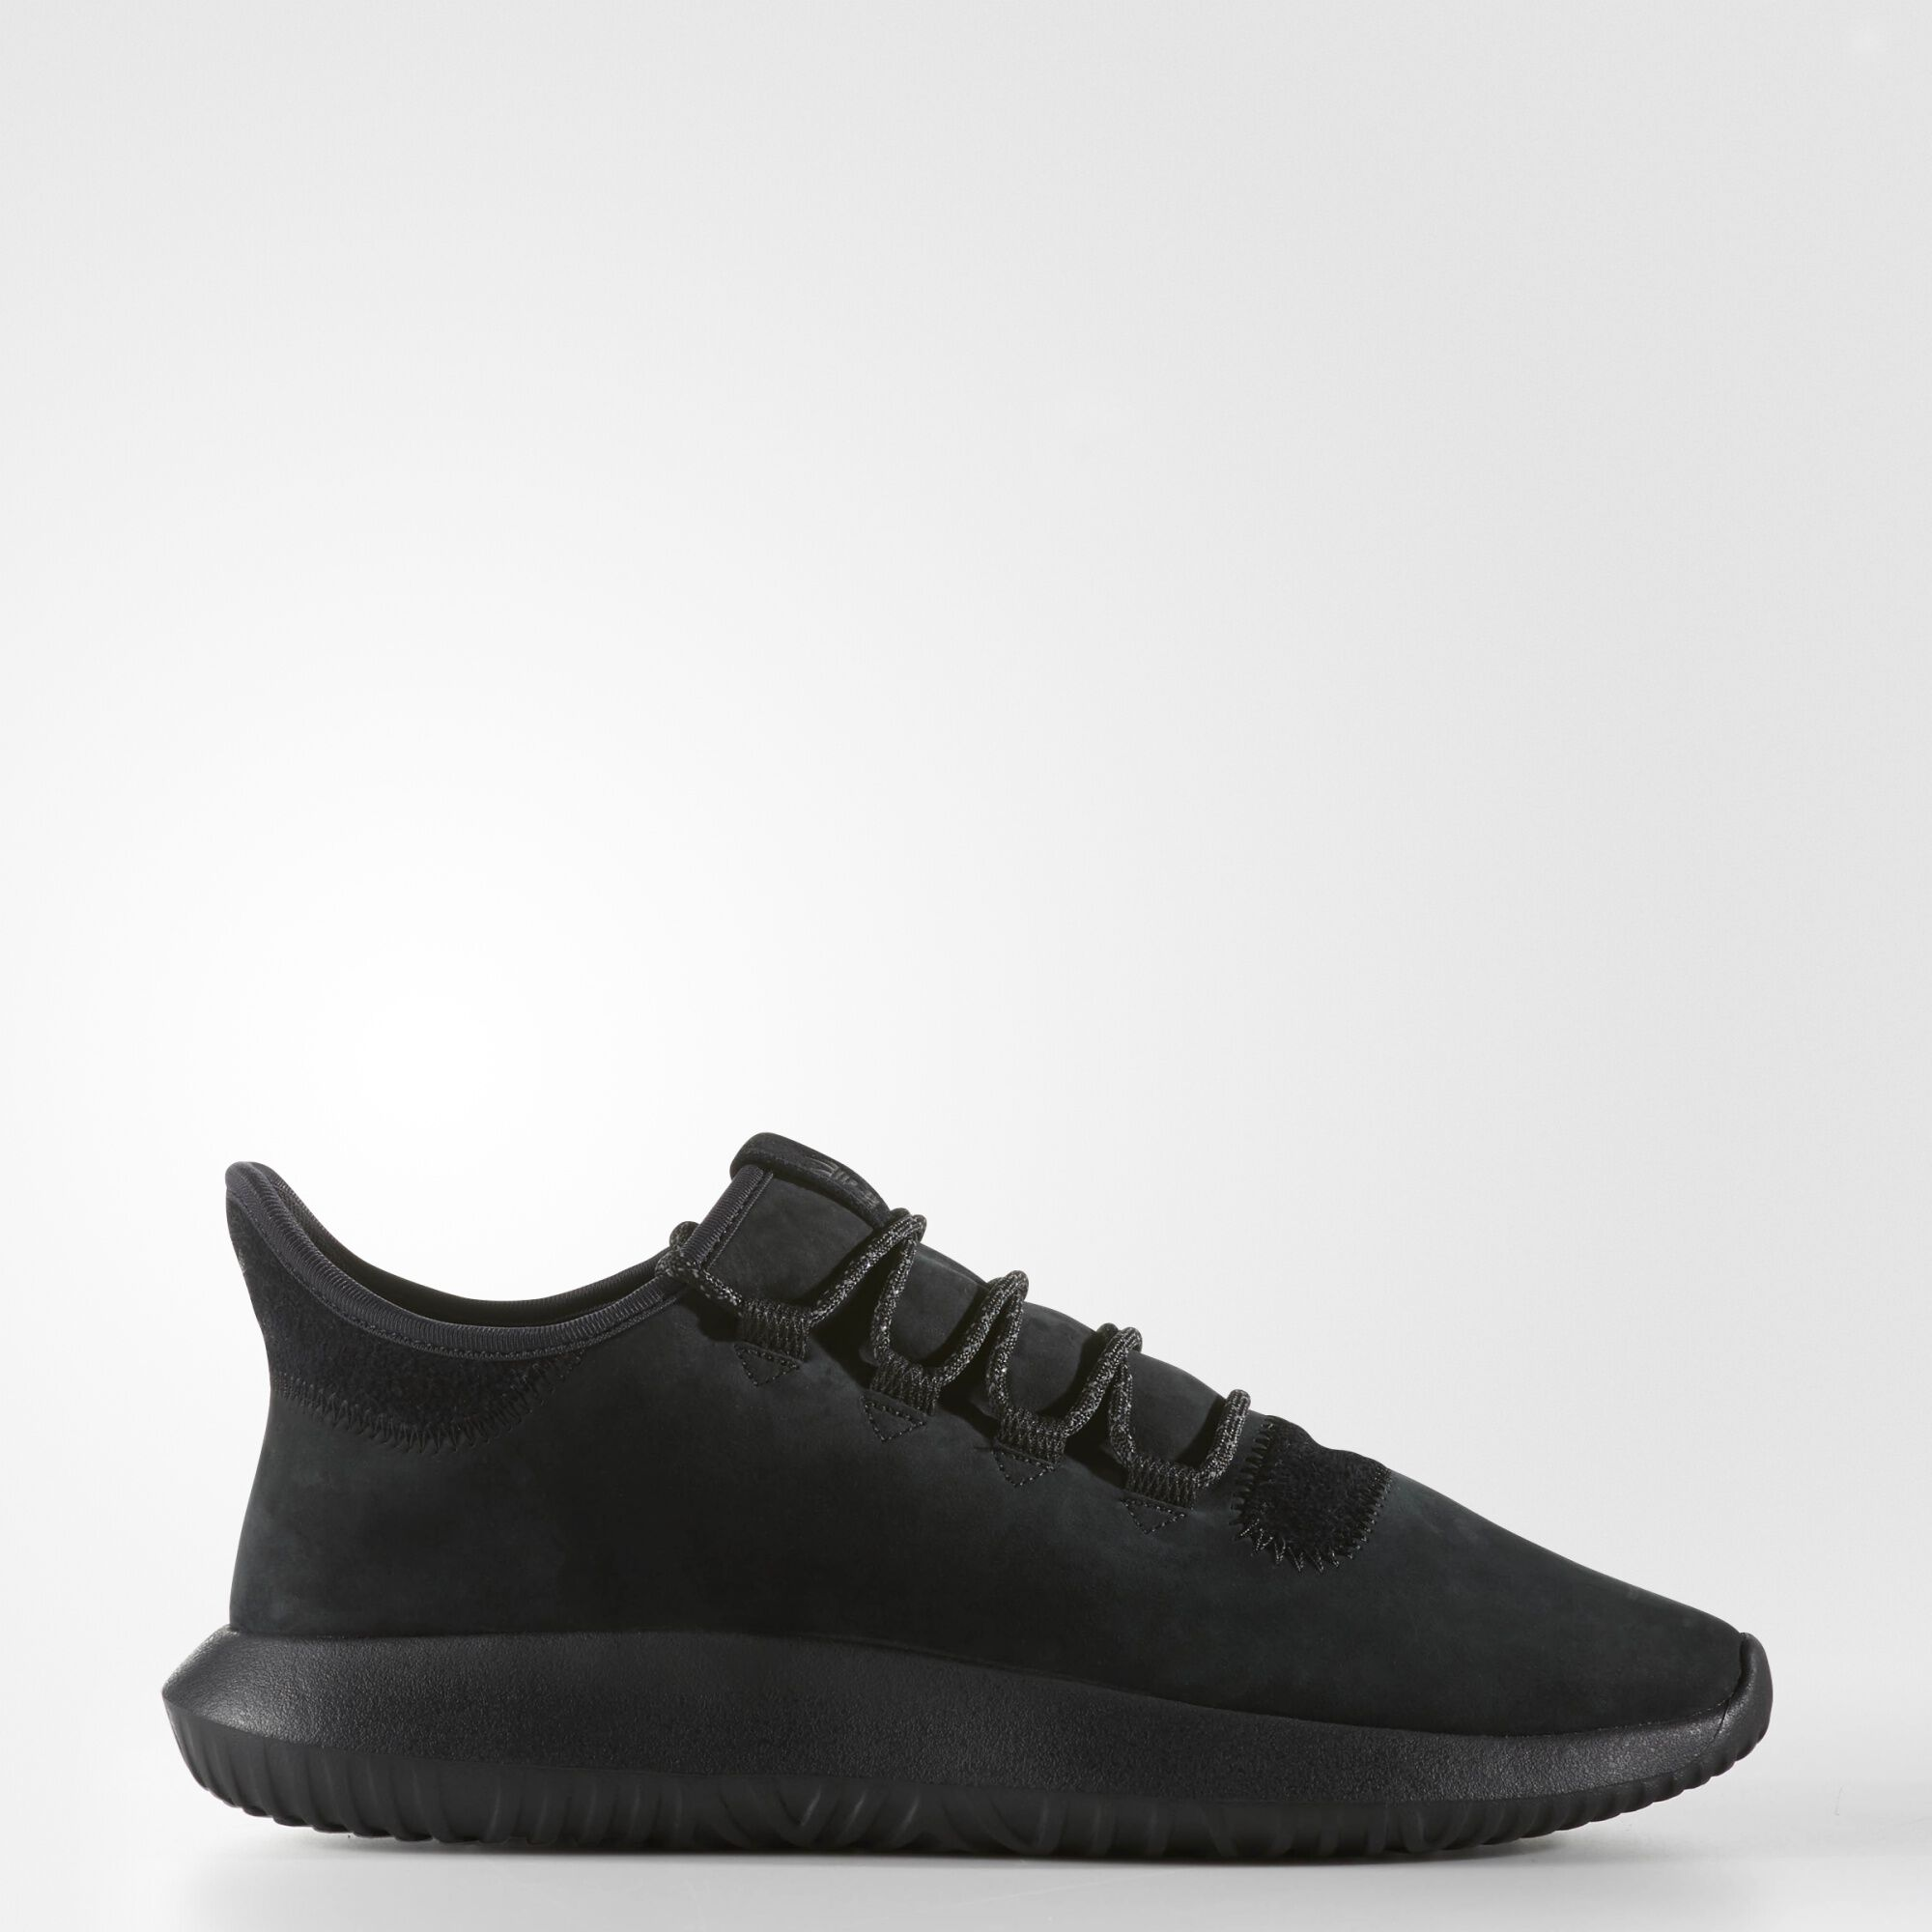 Adidas Tubular Defiant Color Block